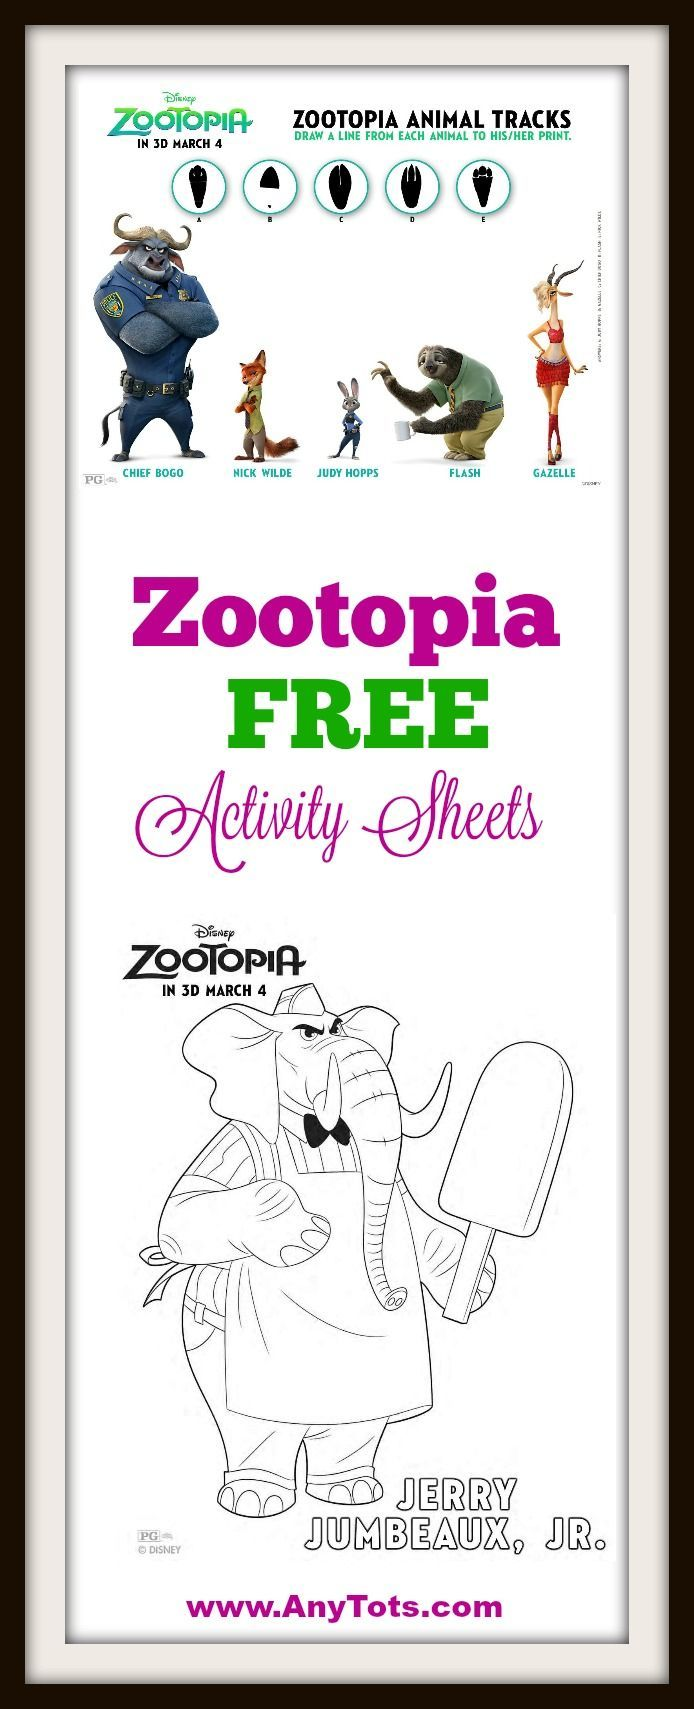 Color crew printables - Zootopia Free Printable Coloring Sheets Visit Www Anytots Com For More Free Disney